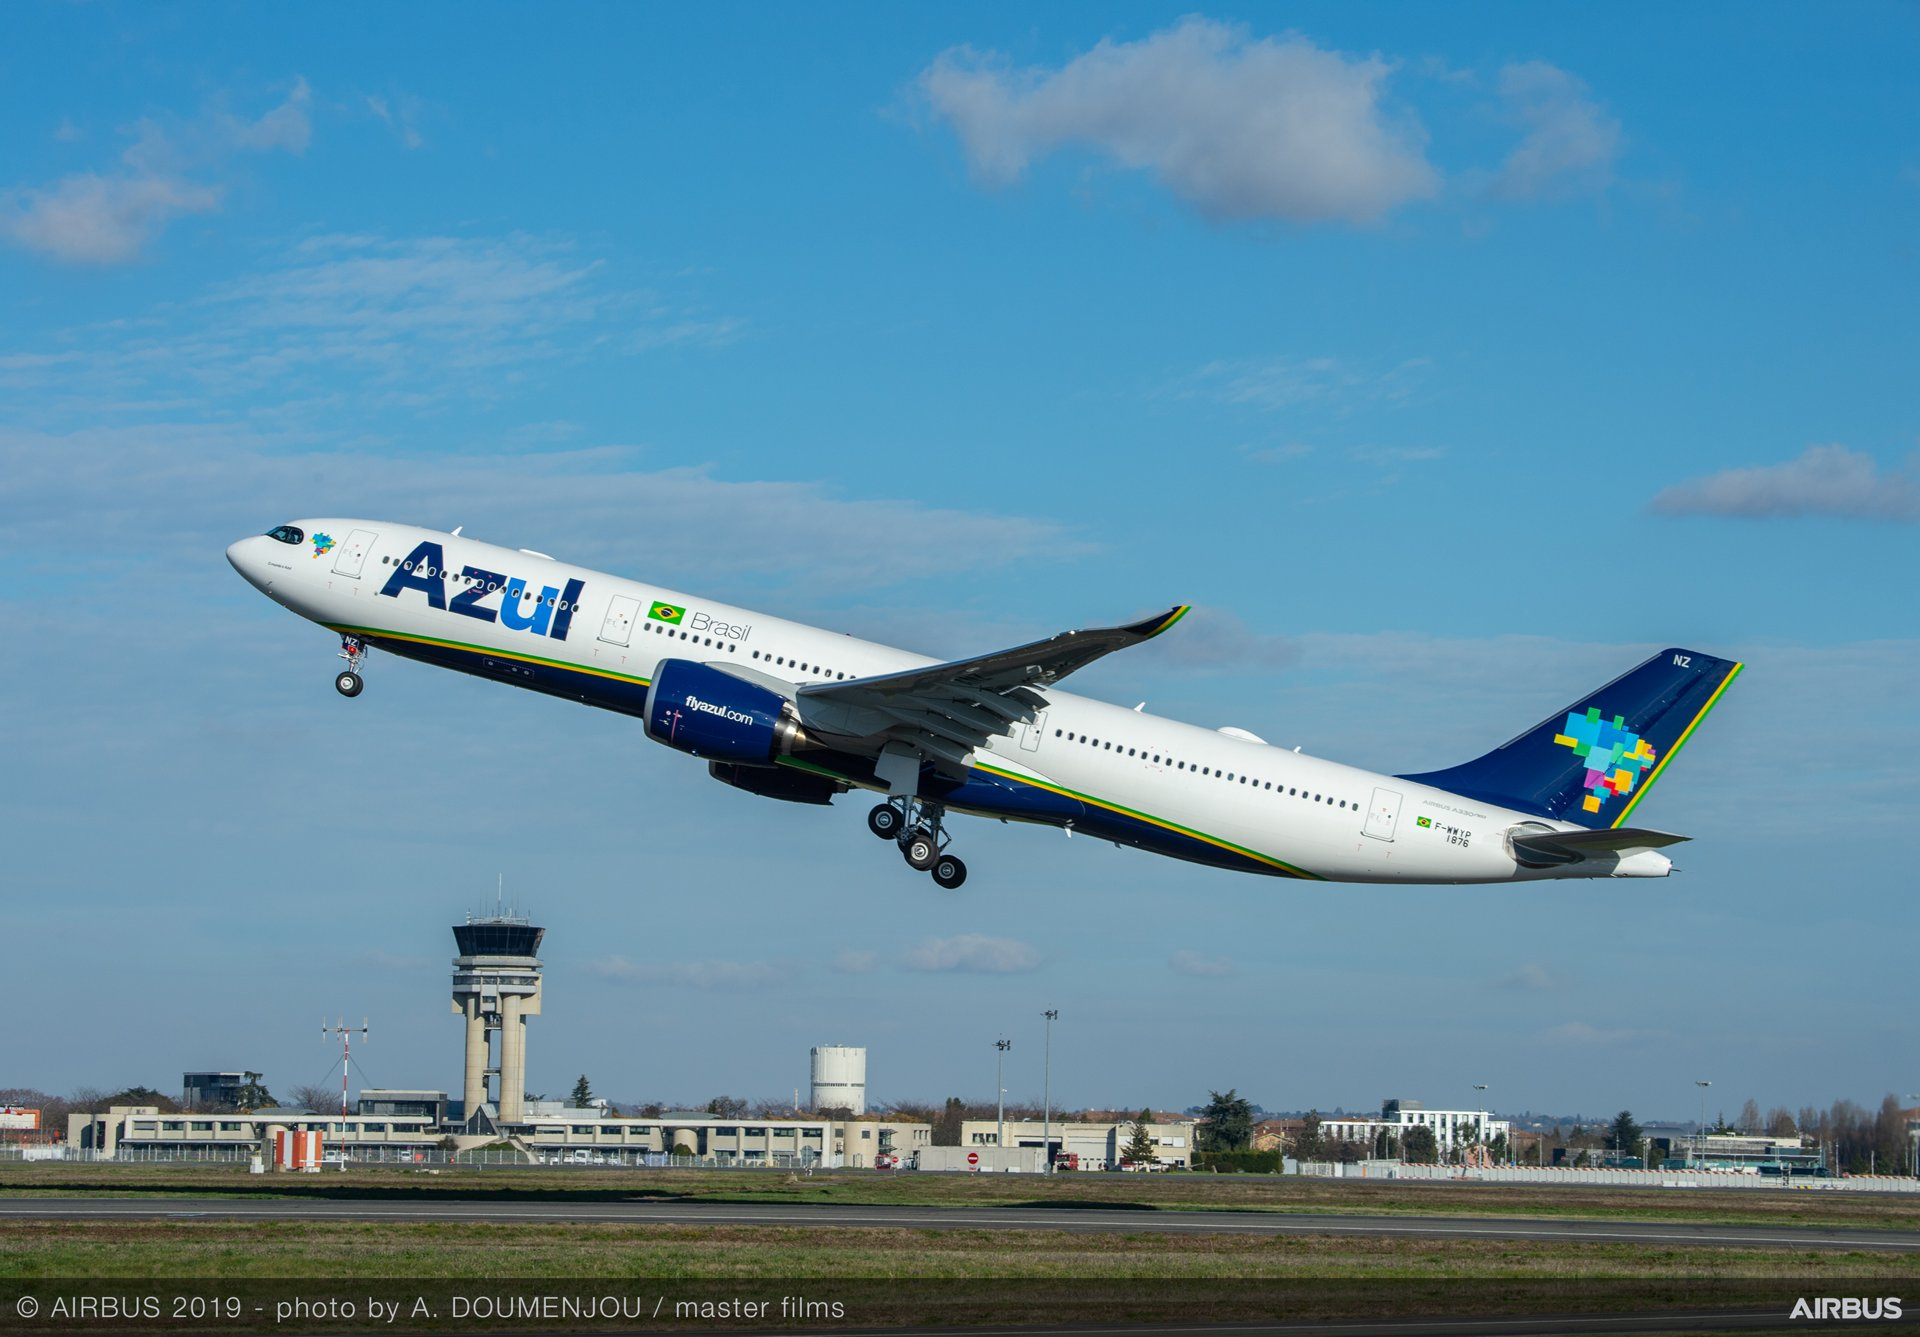 Brazilian carrier Azul Linhas Aéreas became the first airline of the Americas to fly the A330neo jetliner, receiving an A330-900 version leased from Avolon